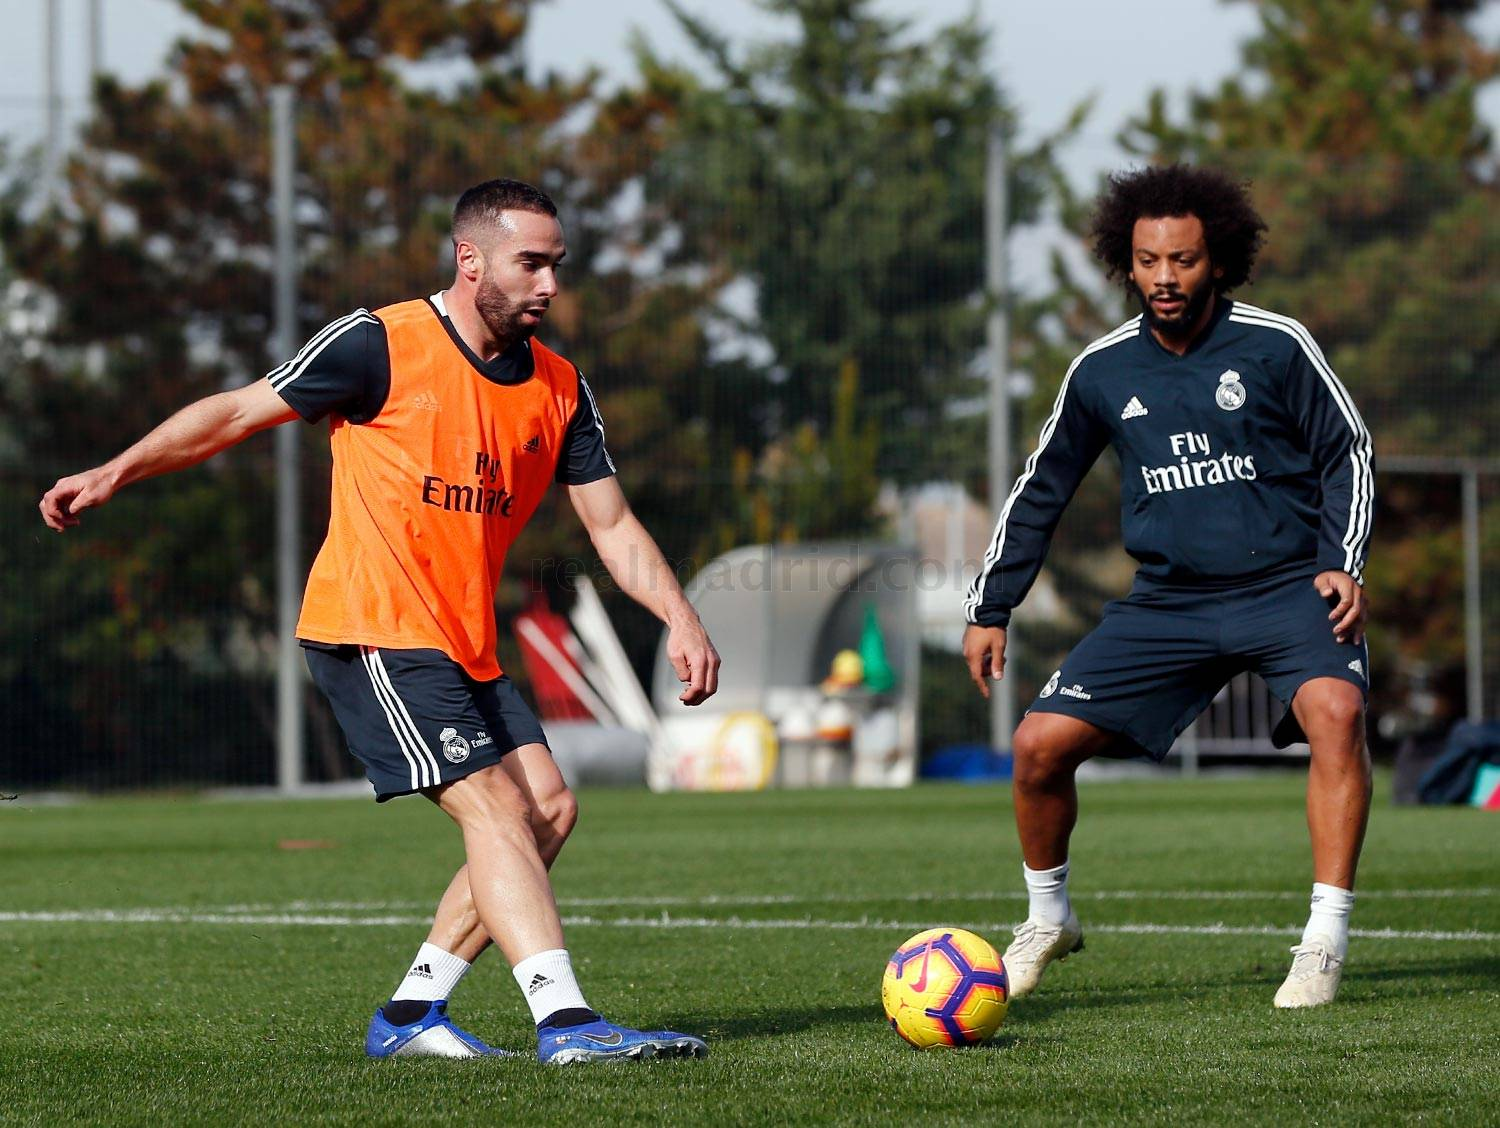 Real Madrid - Entrenamiento del Real Madrid - 14-11-2018